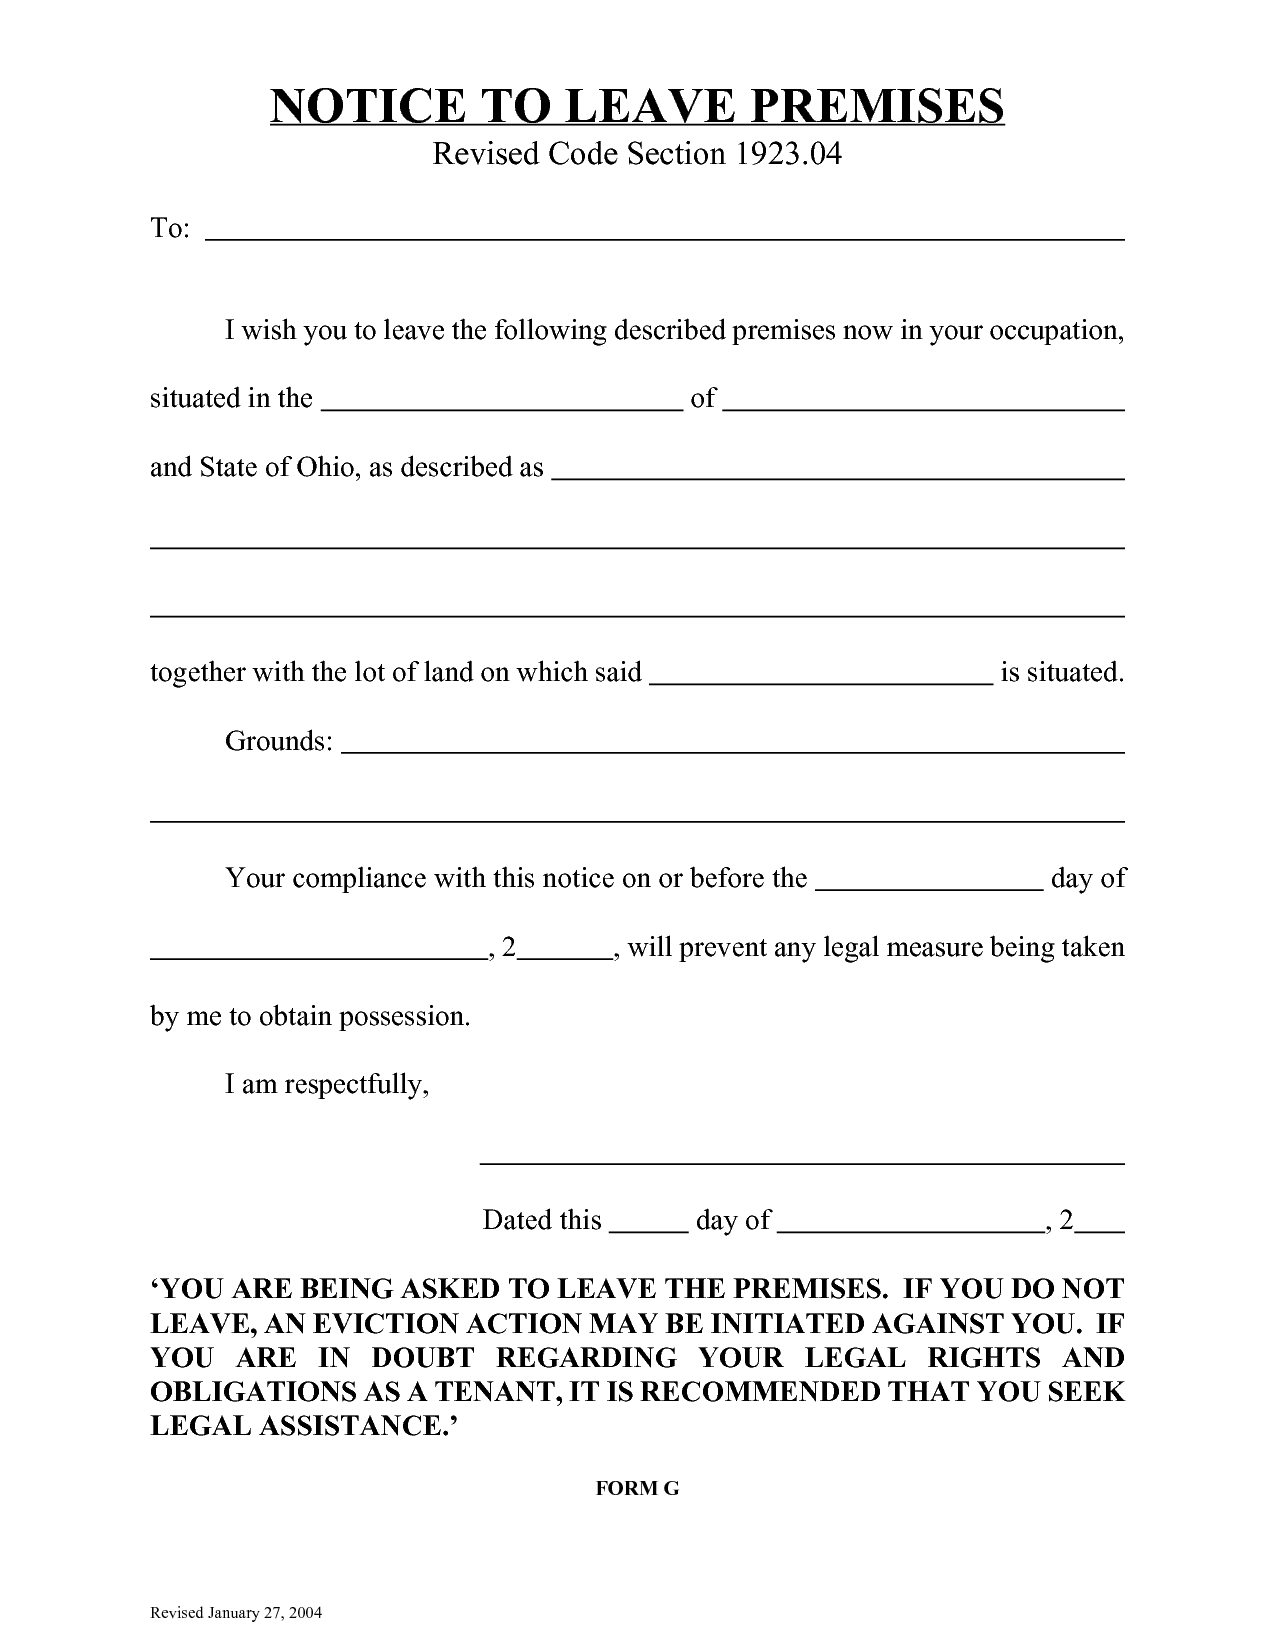 10 Best Images Of Eviction Notice Florida Form Blank